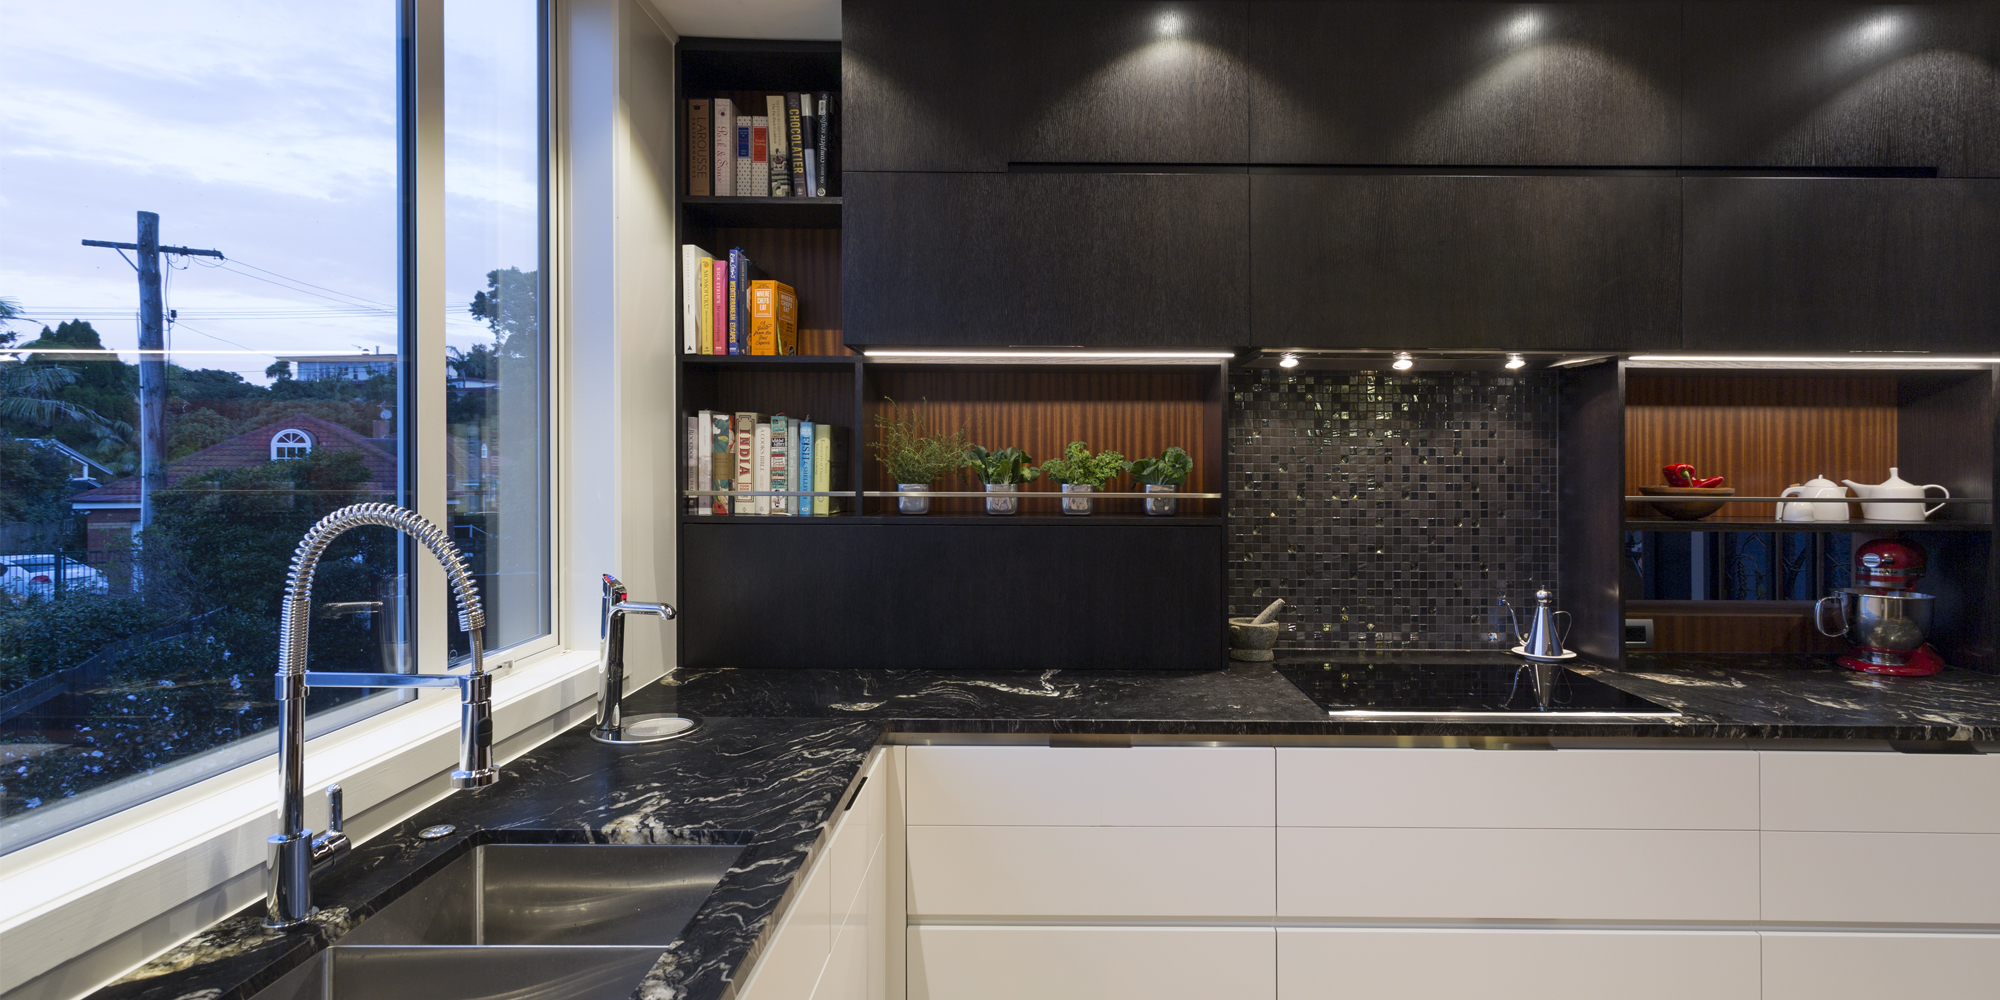 KBD-Mid-Century-City-Kitchen-1.jpg